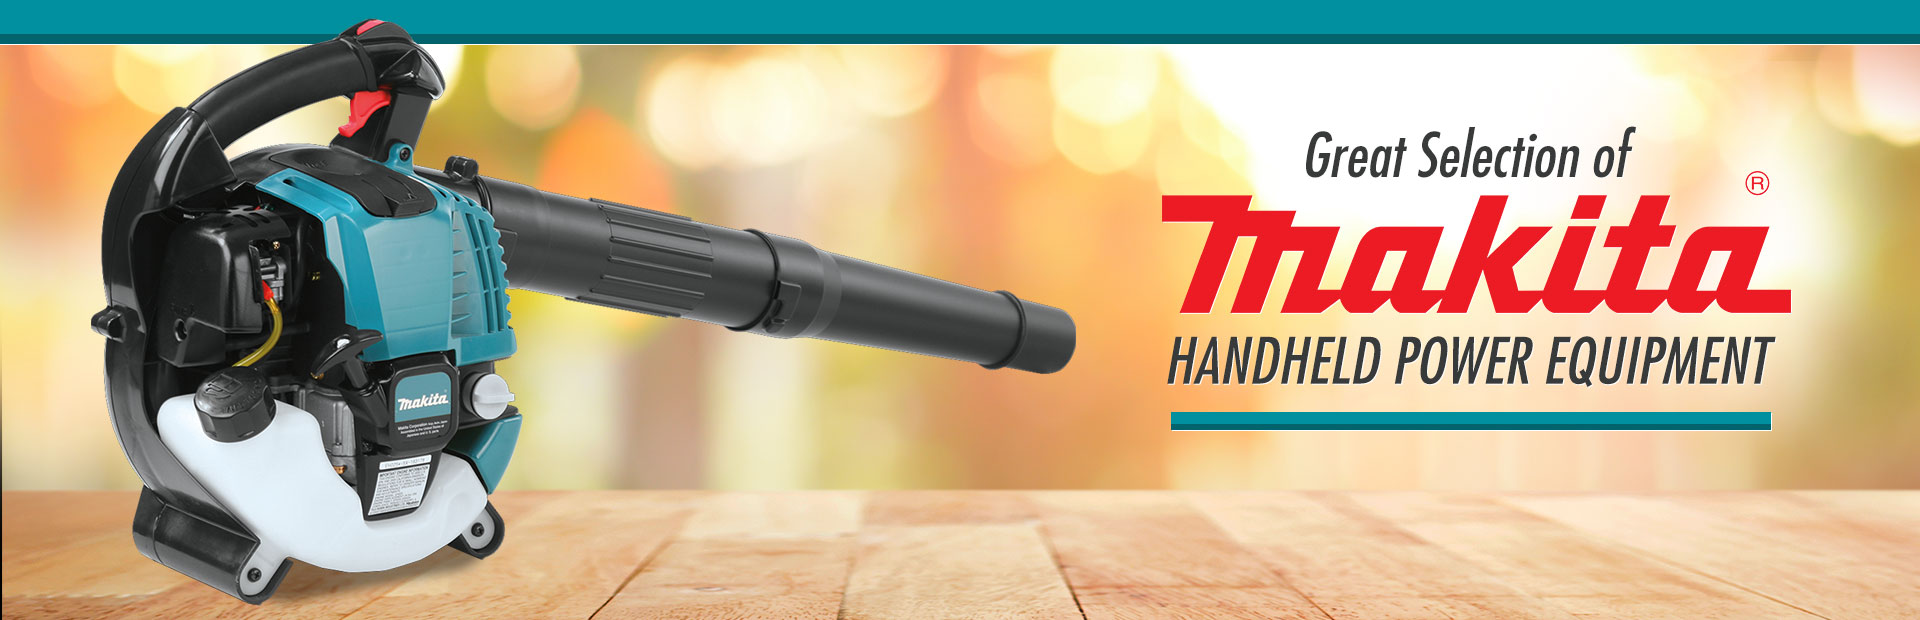 Great Selection of Makita Handheld Power Equipment: Click here to view the models.